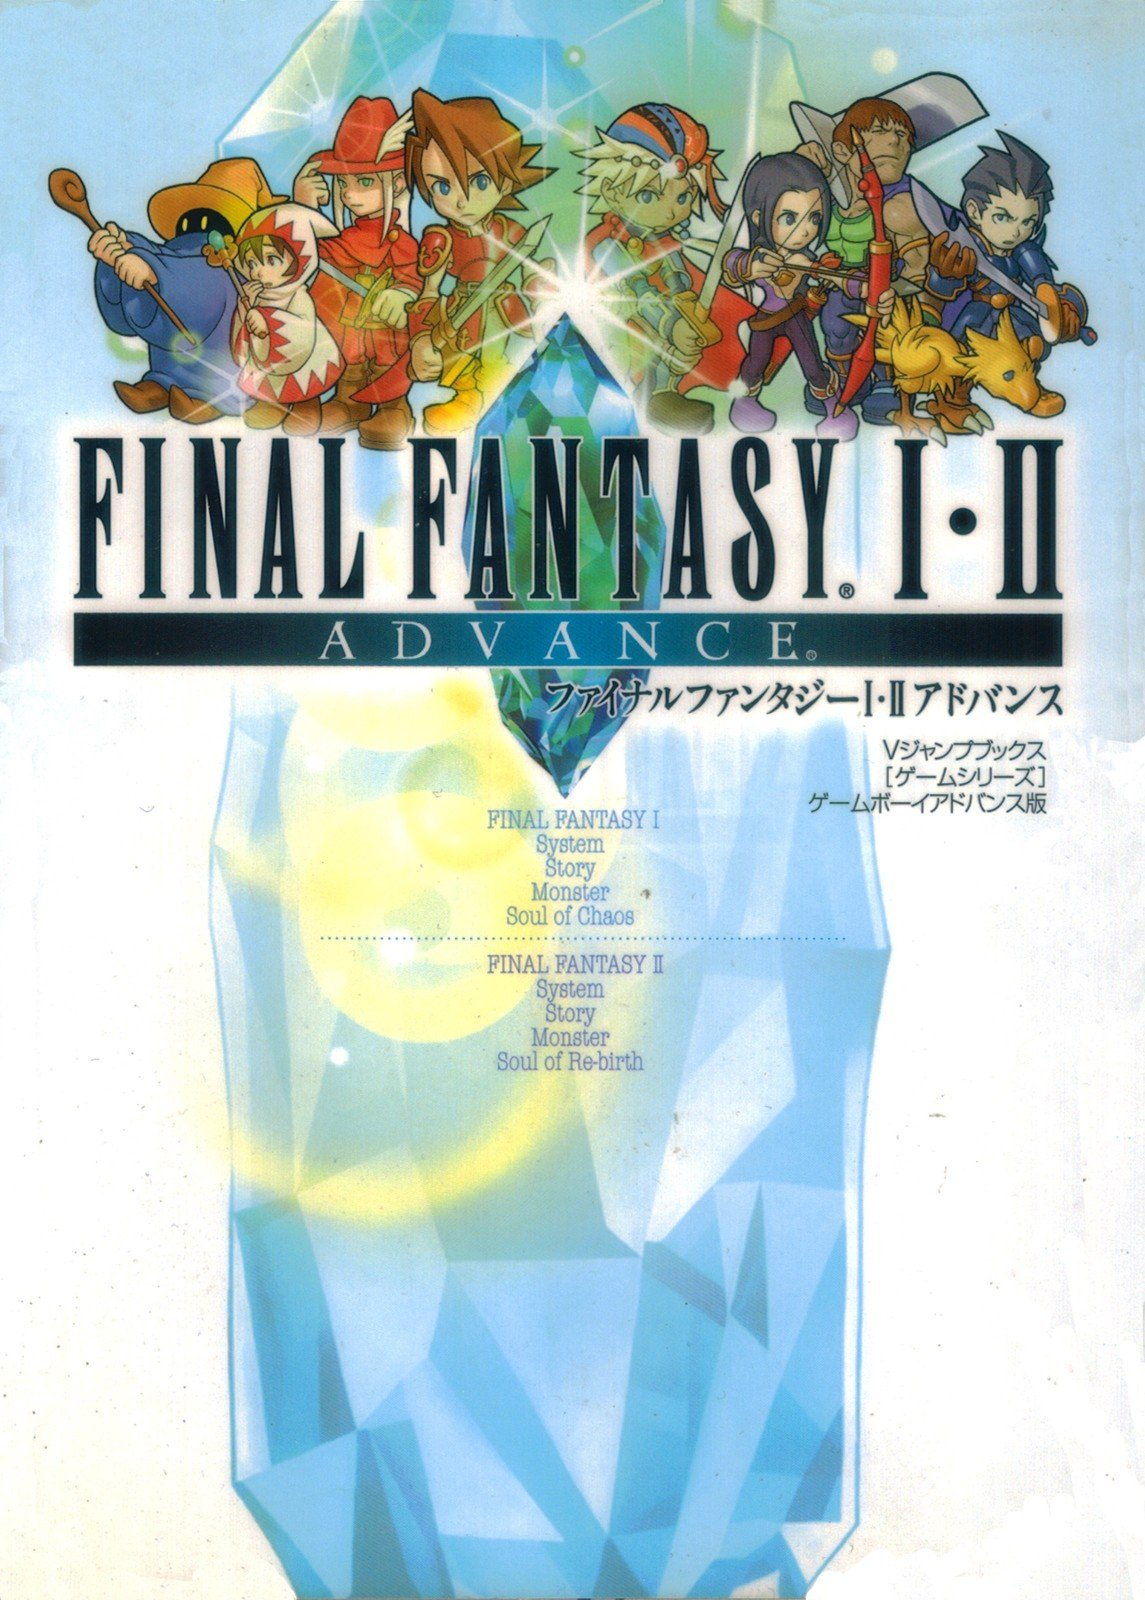 Final Fantasy 1 & 2 Advance Strategy Guide